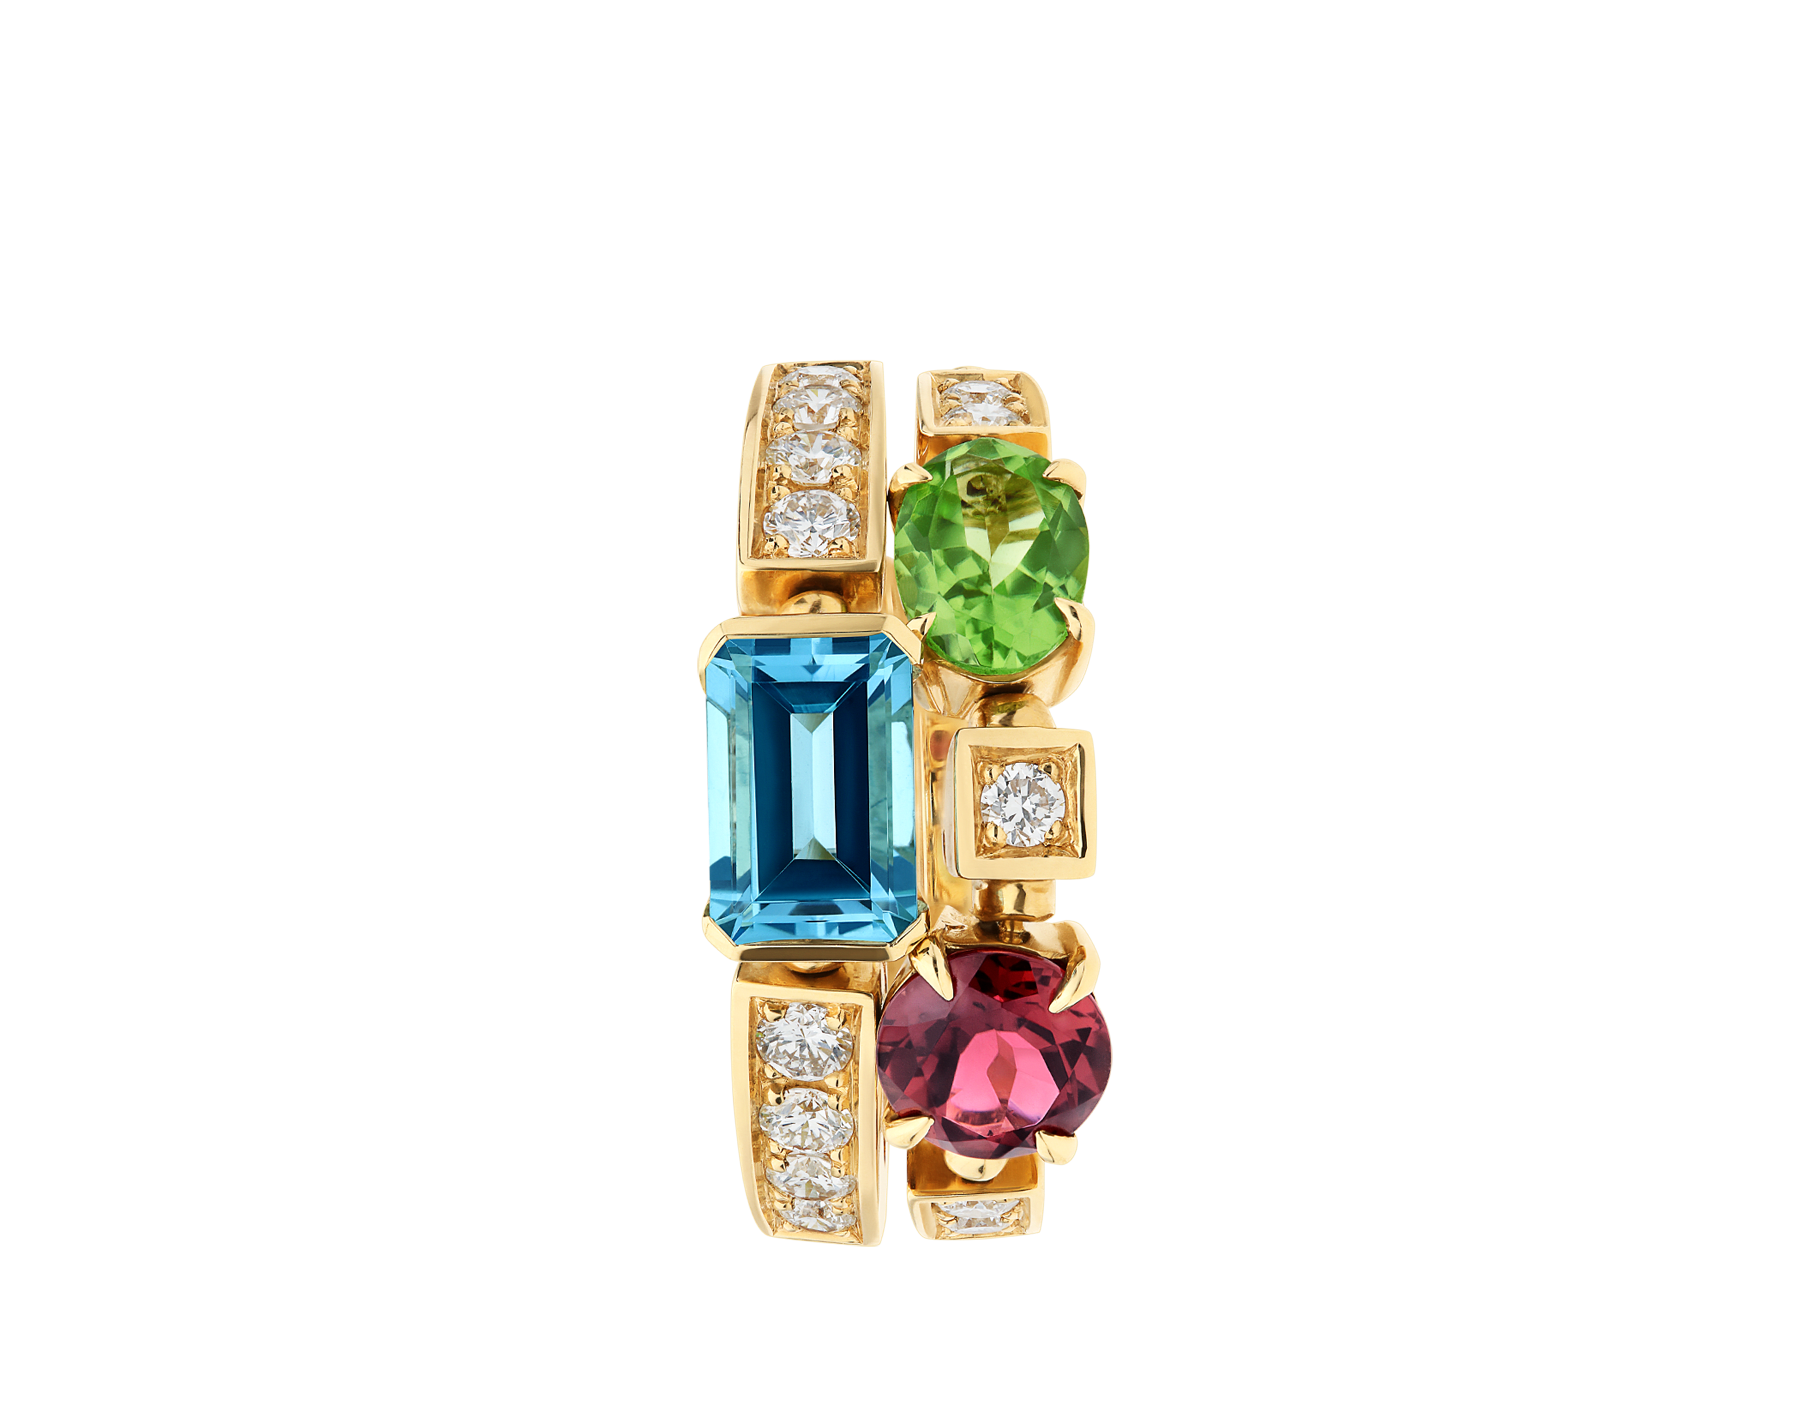 Allegra two-band 18 kt yellow gold ring set with pink tourmaline, peridot, blue topaz and pavé diamonds AN852169 image 2